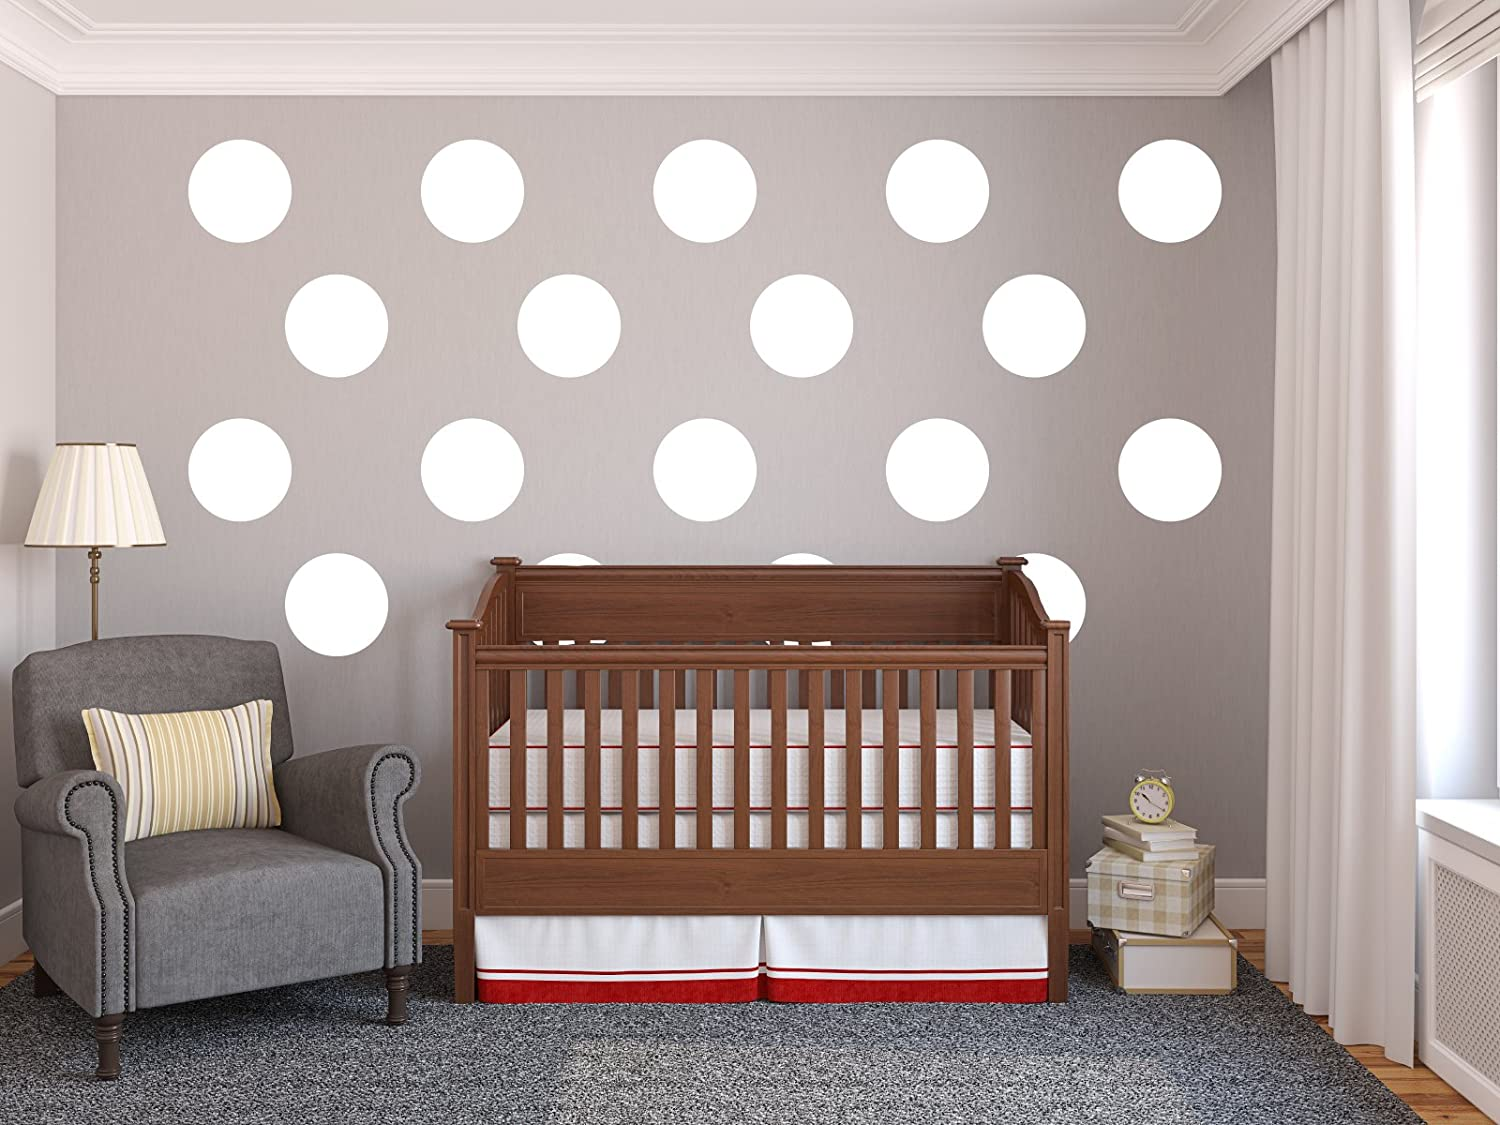 Amazon large wall polka dots 18 12 vinyl wall art decal amazon large wall polka dots 18 12 vinyl wall art decal for homes offices kids rooms nurseries schools high schools colleges amipublicfo Choice Image